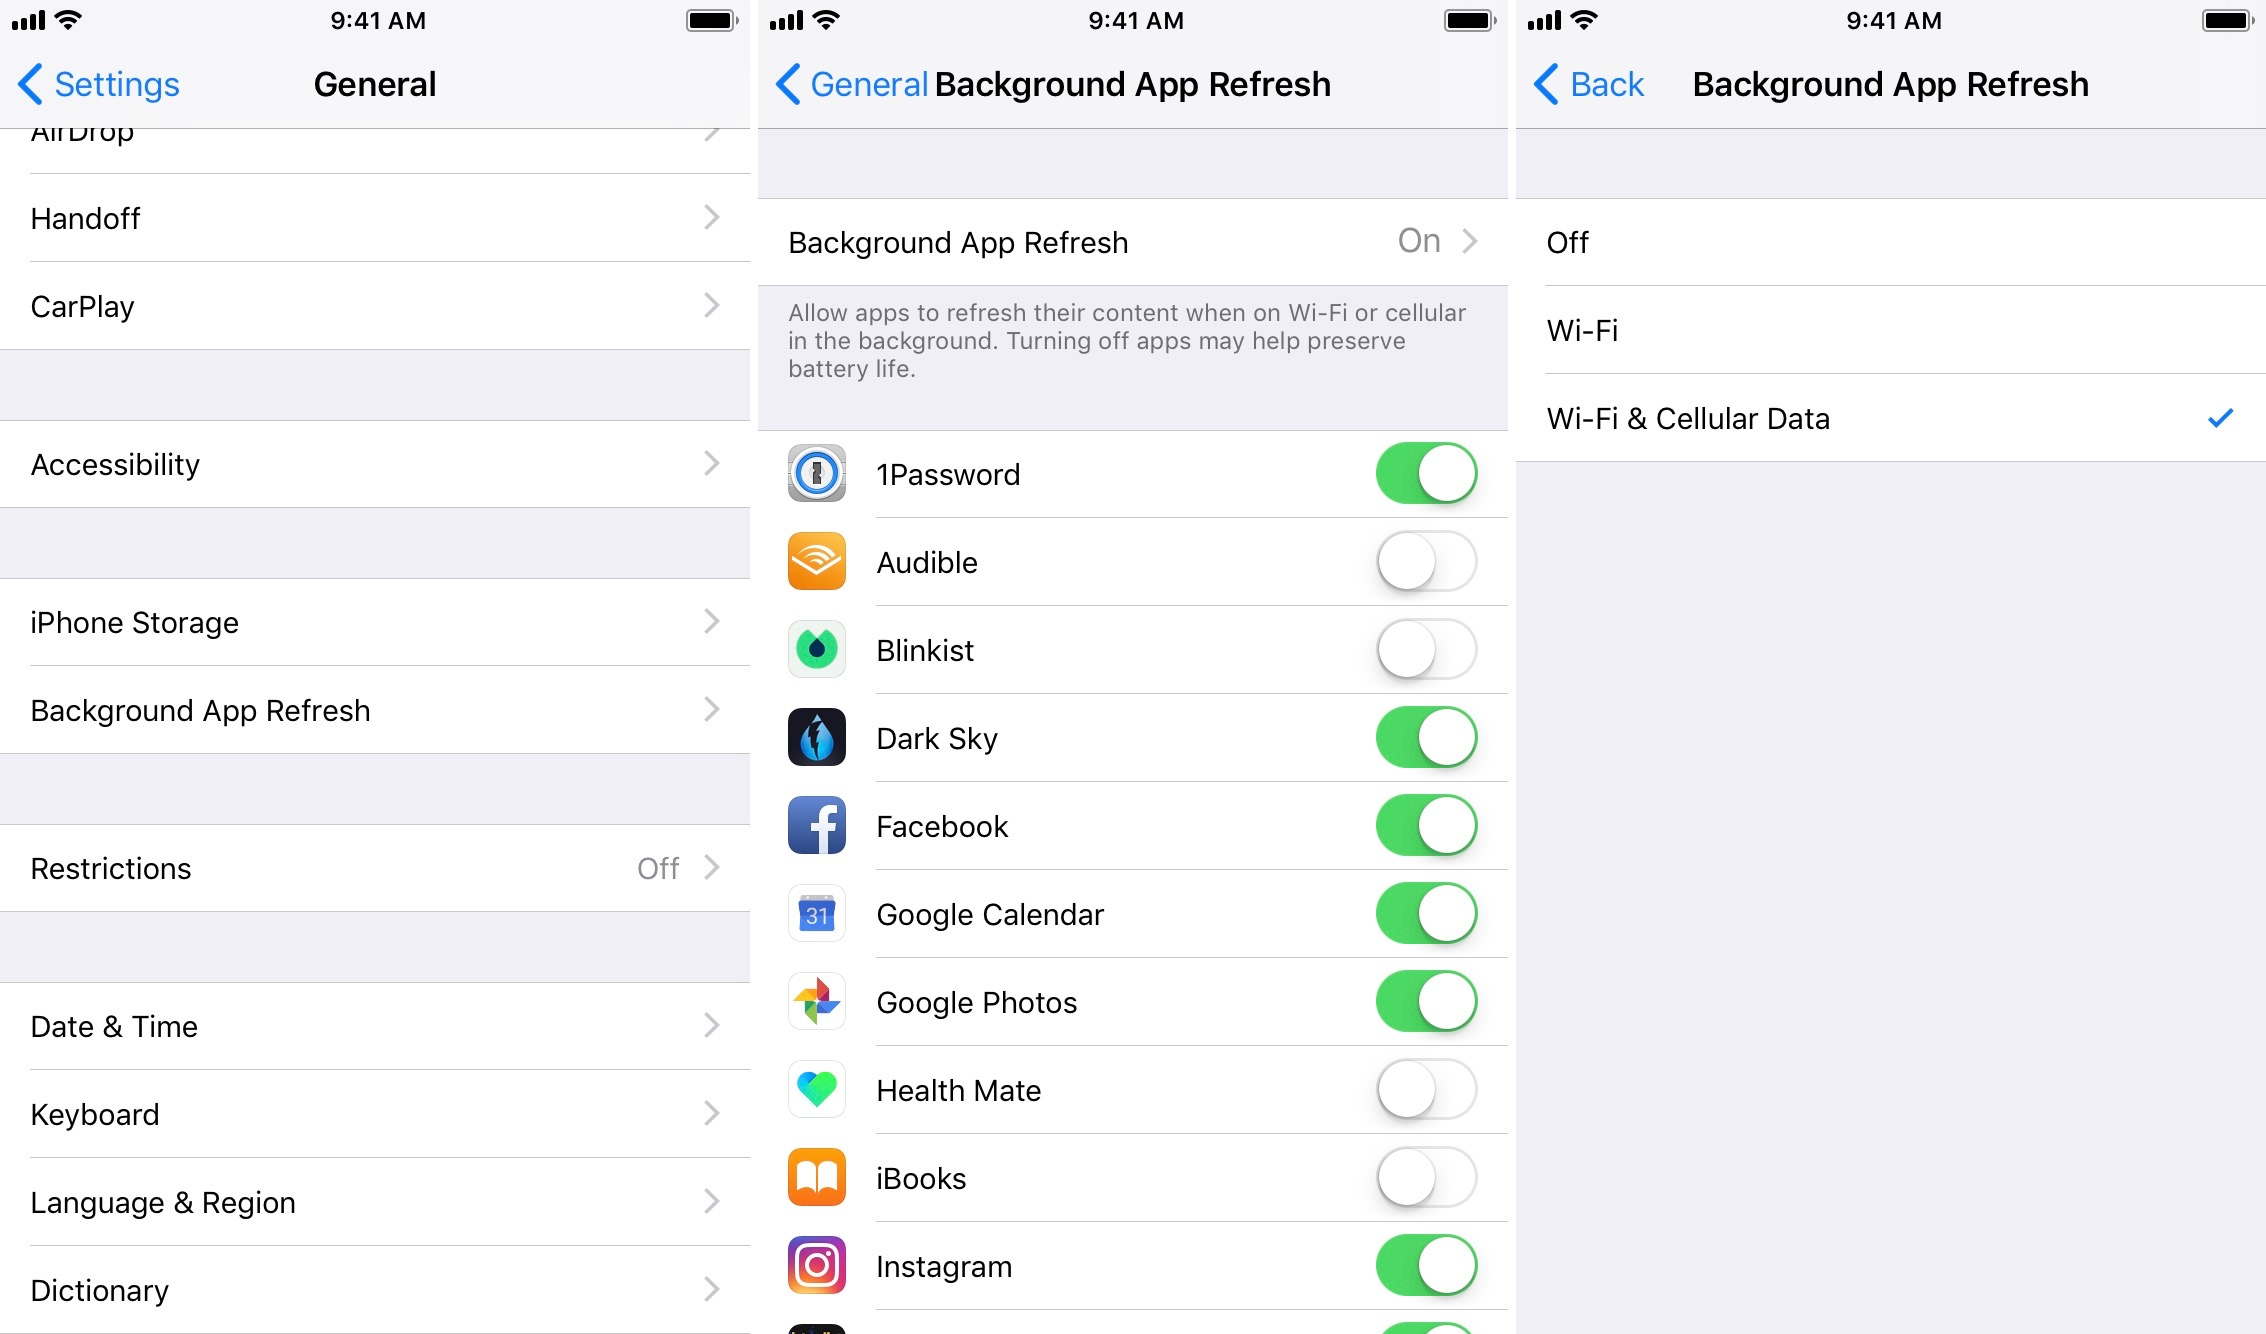 iOS 11: How to improve iPhone battery life - 9to5Mac